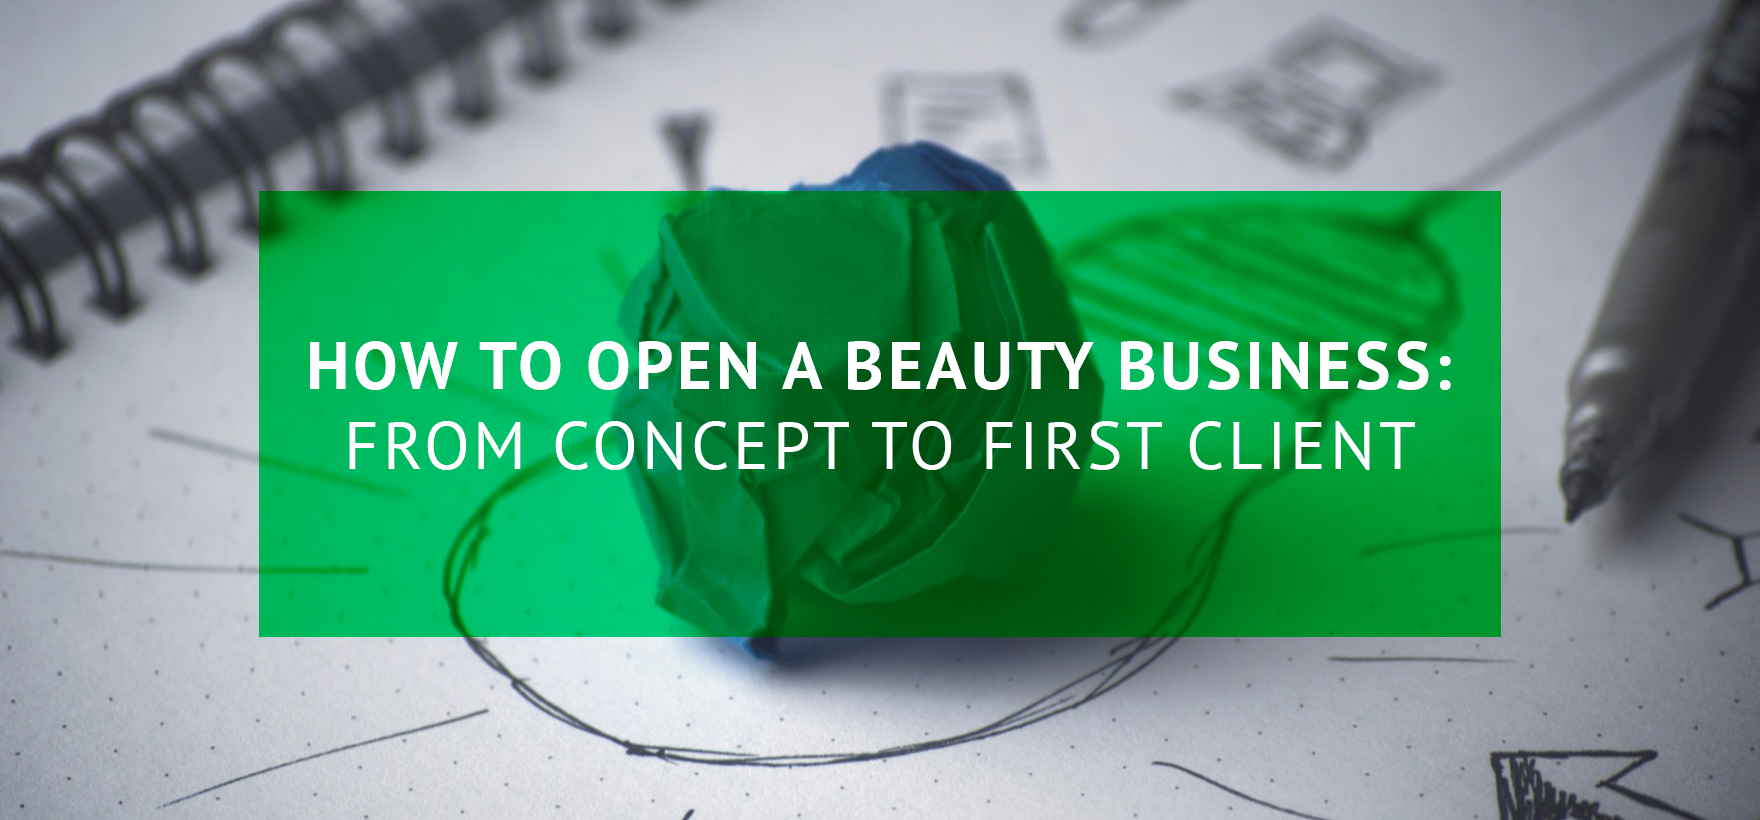 How to open a beauty business